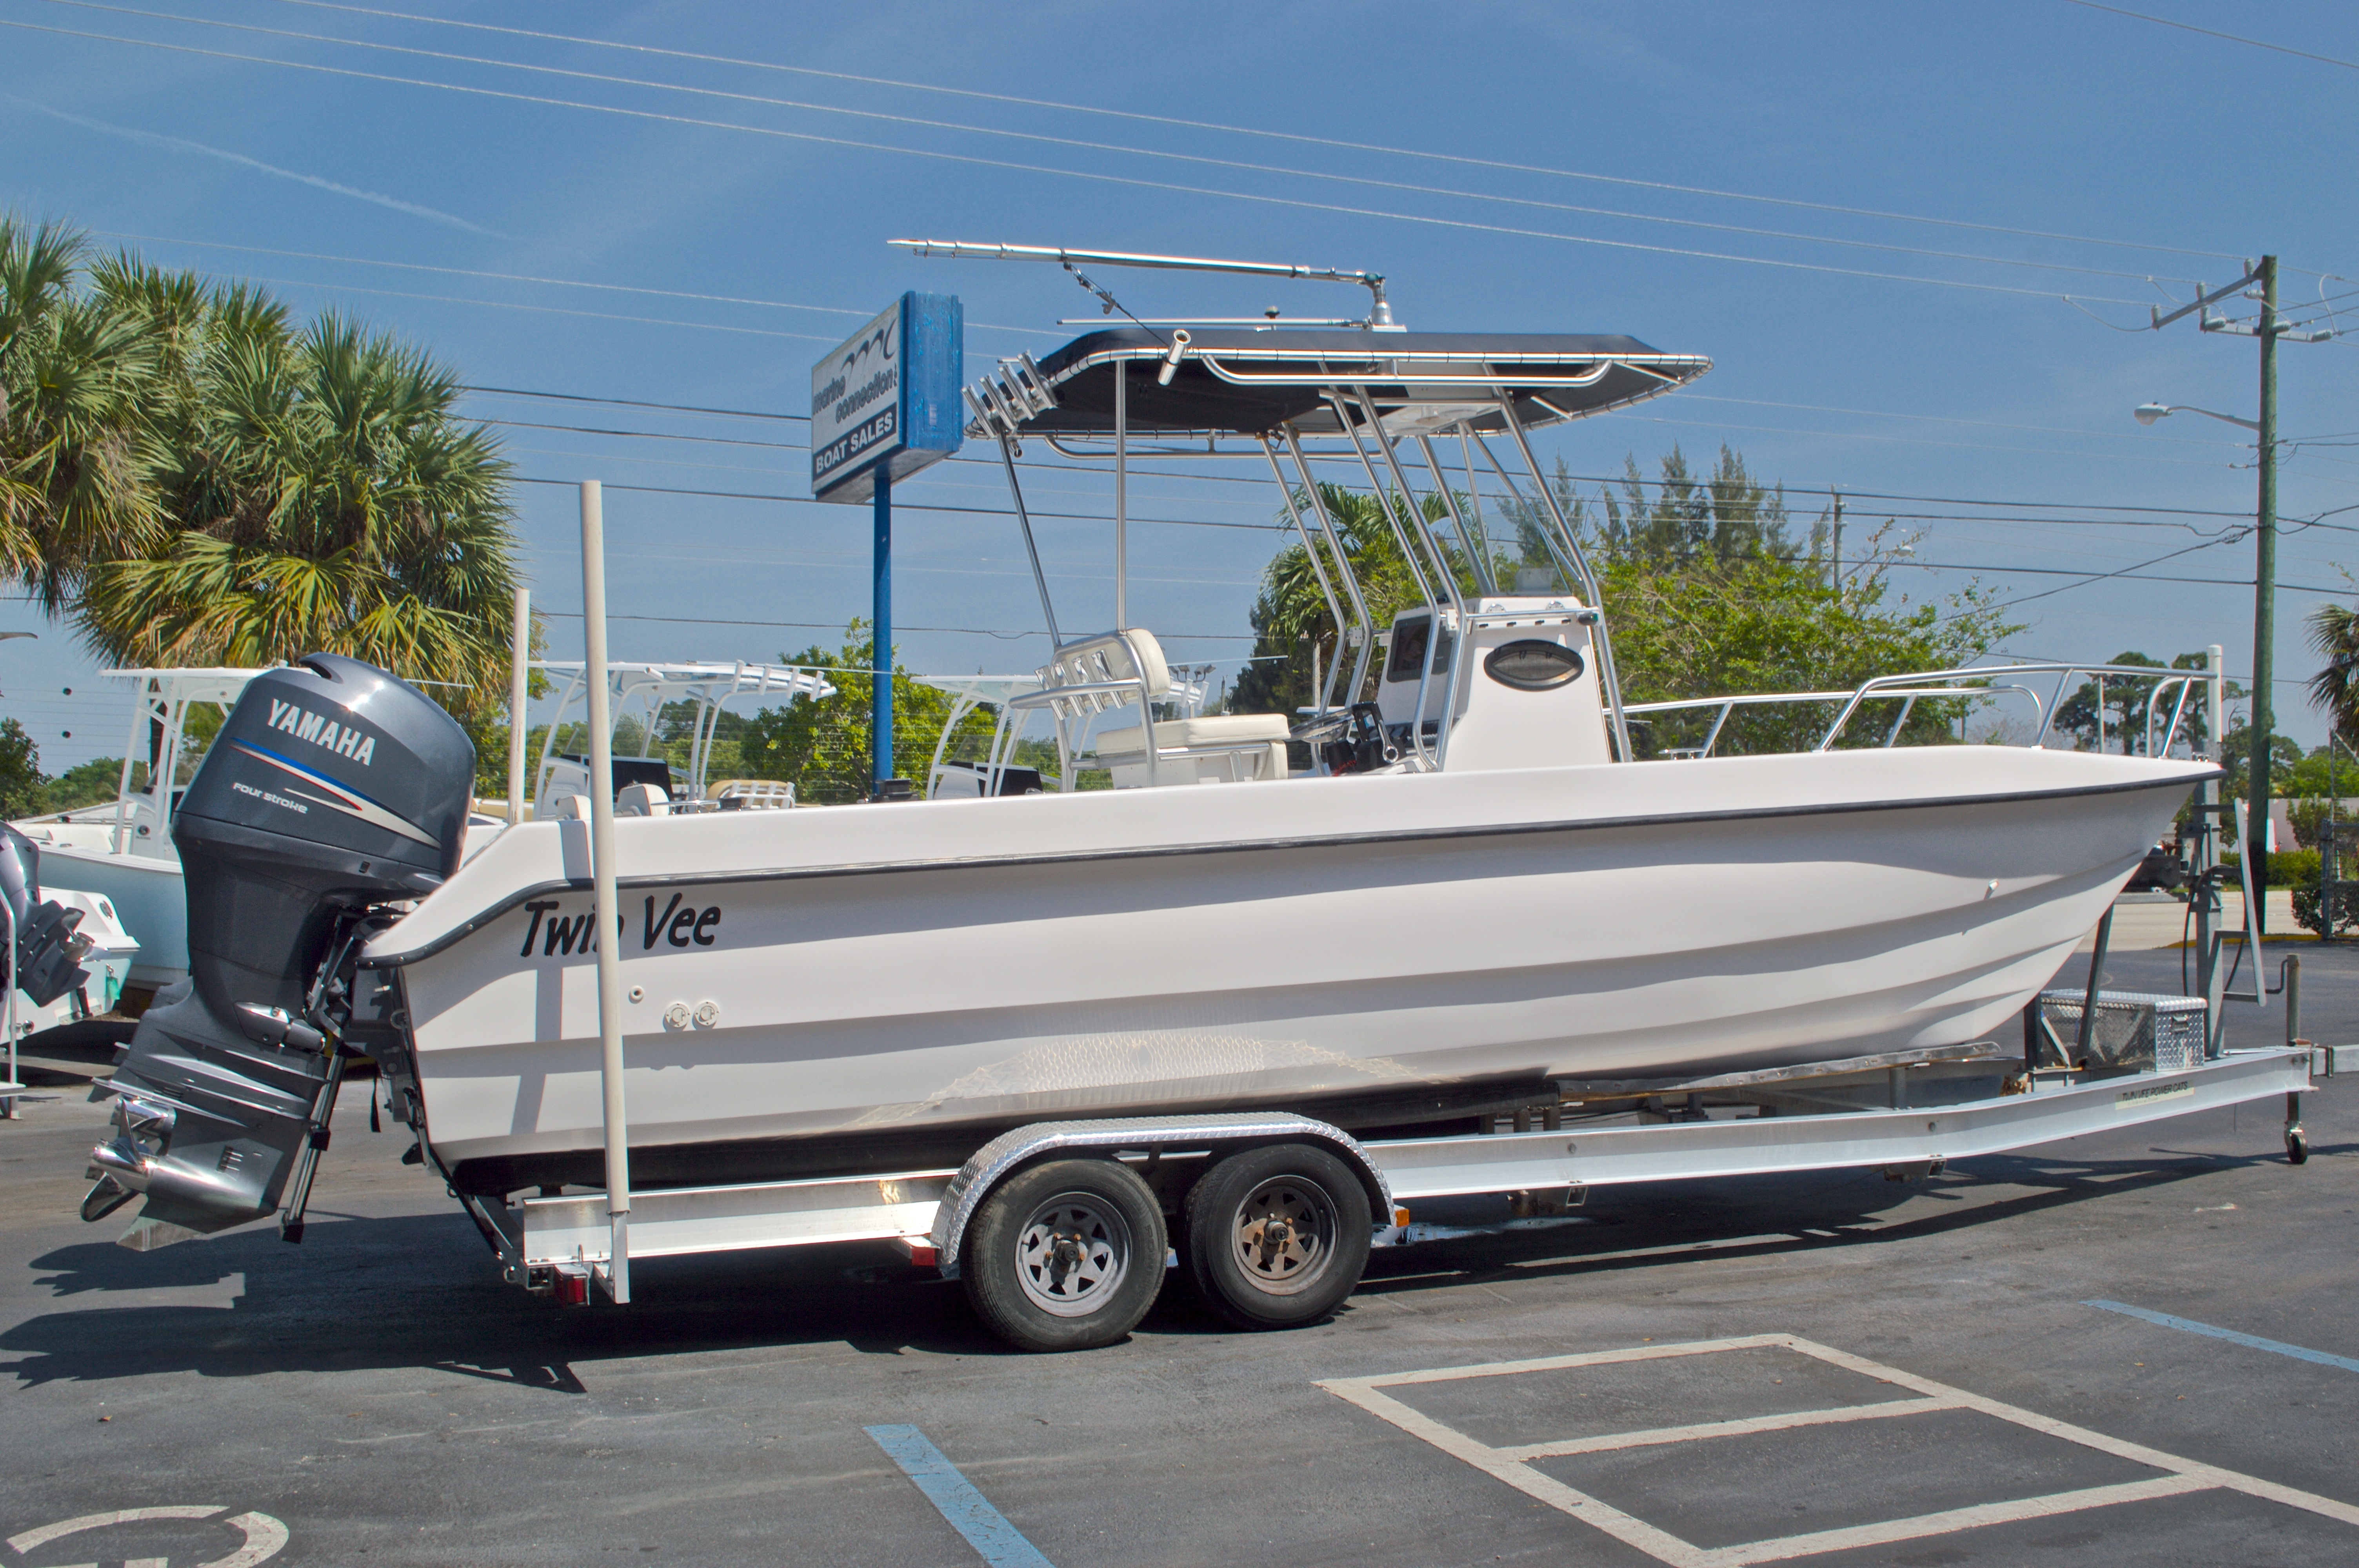 Thumbnail 3 for Used 2005 Twin Vee 26 CC Center Console boat for sale in West Palm Beach, FL